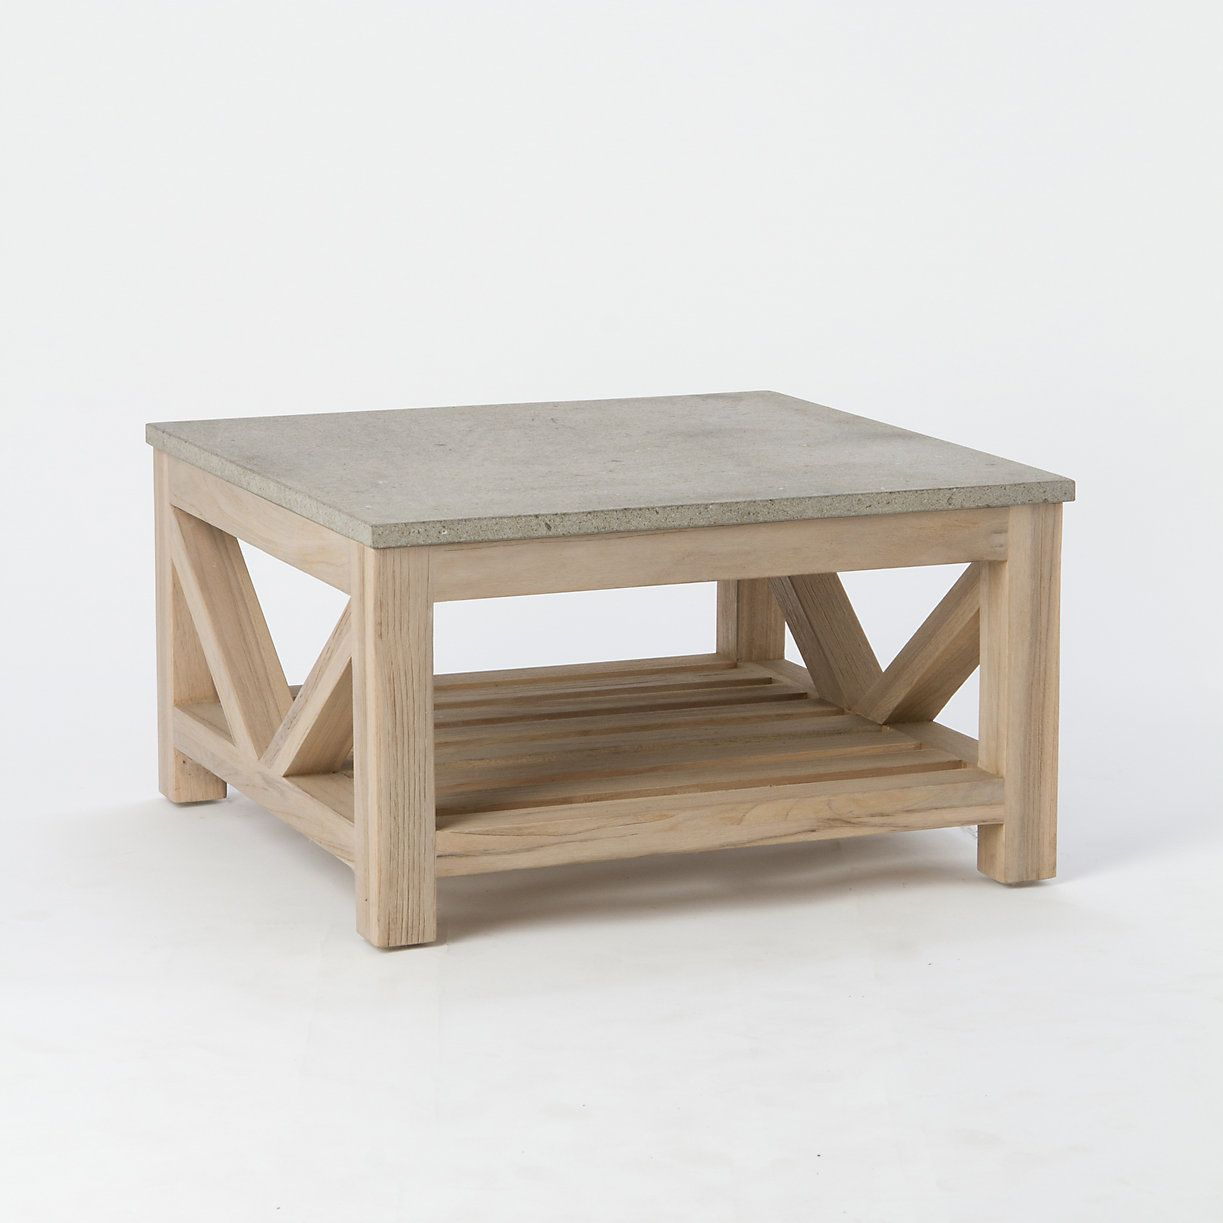 Wonderful Topped With A Square Of Polished Blue Stone, This Square Coffee Table Is  Crafted Exclusively For Terrain From Weather Resistant Teak With An Instant  G